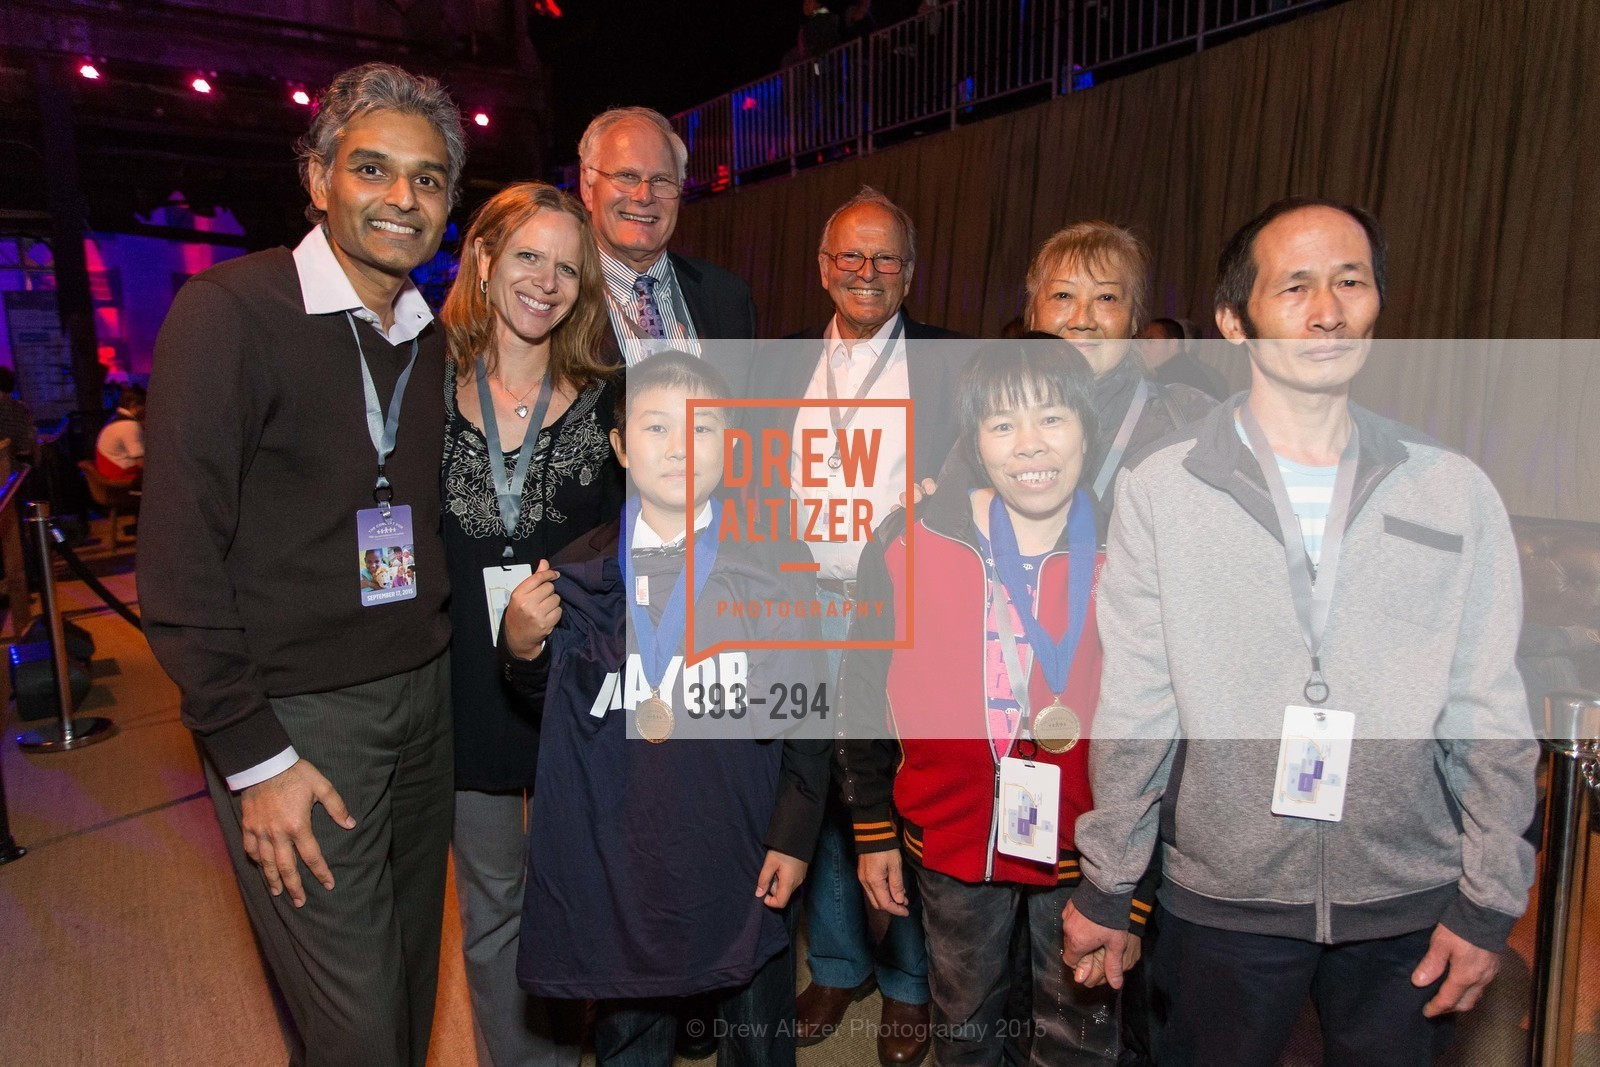 Anu Agrawal, Jennifer Michlitsch, Mark Laret, Zhenkang Zhao, Burt Lubin, The Concert For UCSF Benioff Children's Hospital, Pier 70, September 17th, 2015,Drew Altizer, Drew Altizer Photography, full-service agency, private events, San Francisco photographer, photographer california